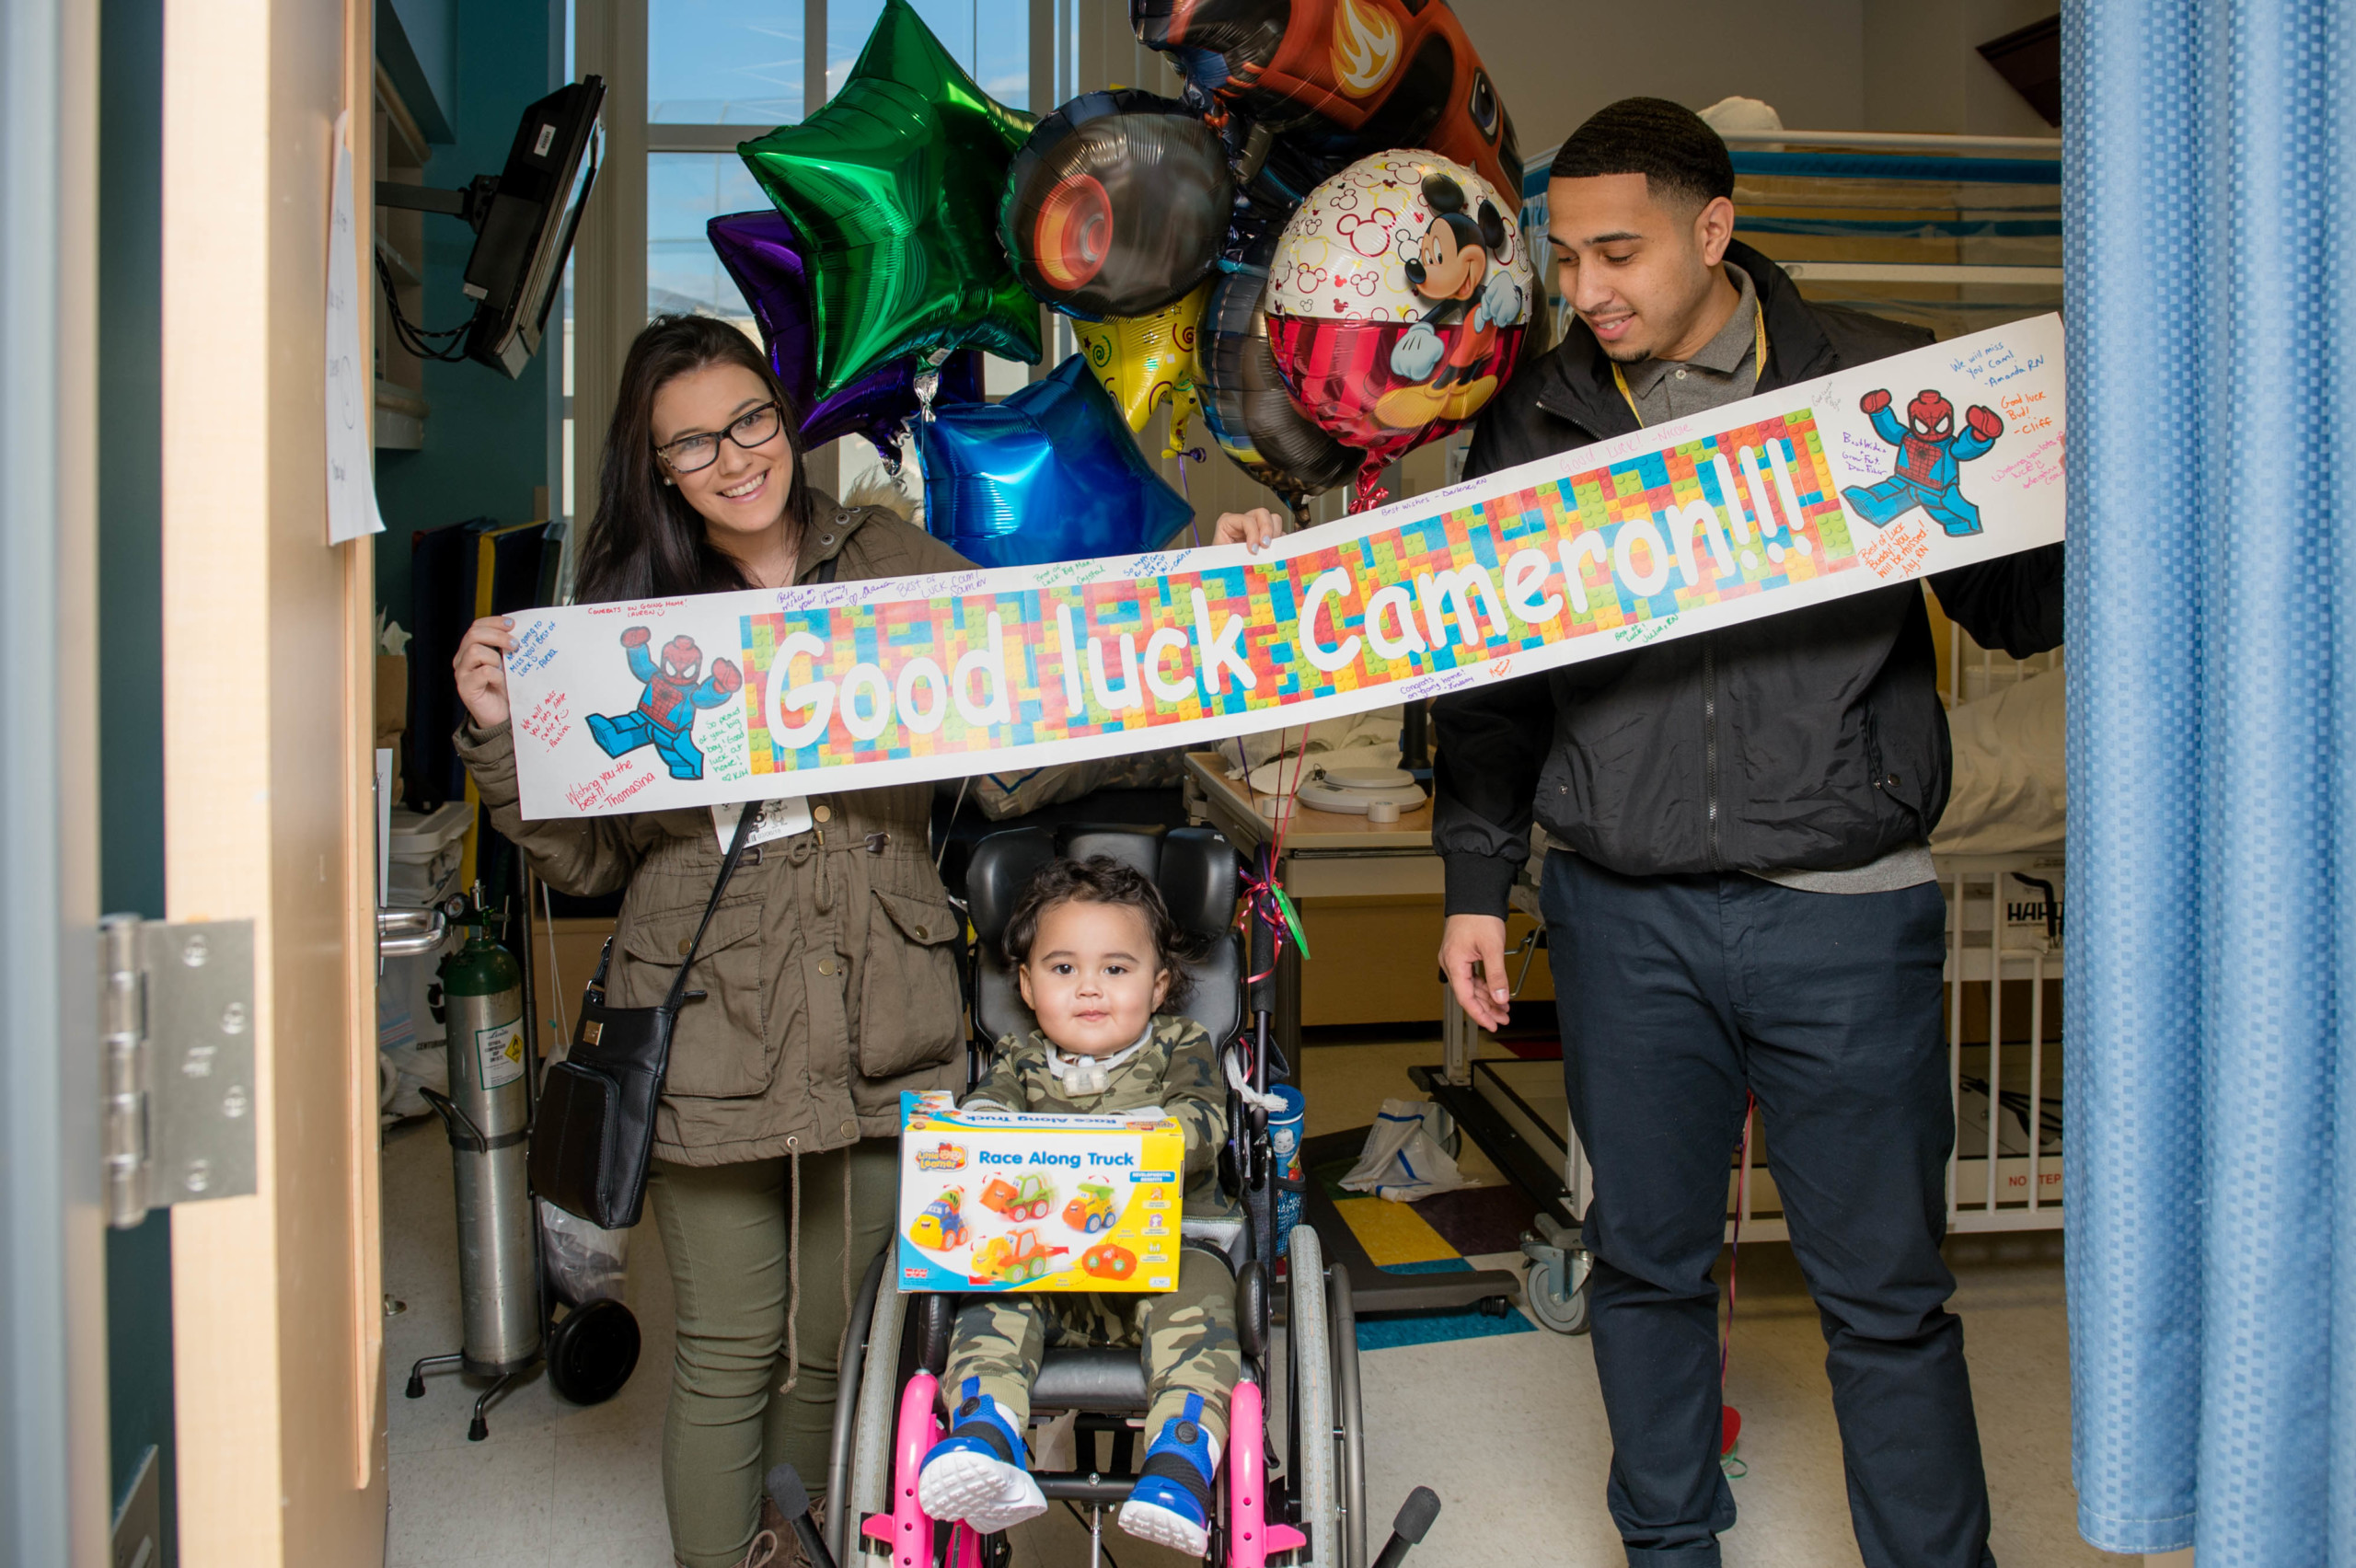 Cameron Soto on the day he left the hospital following a two-month stay after swallowing a lithium ion battery